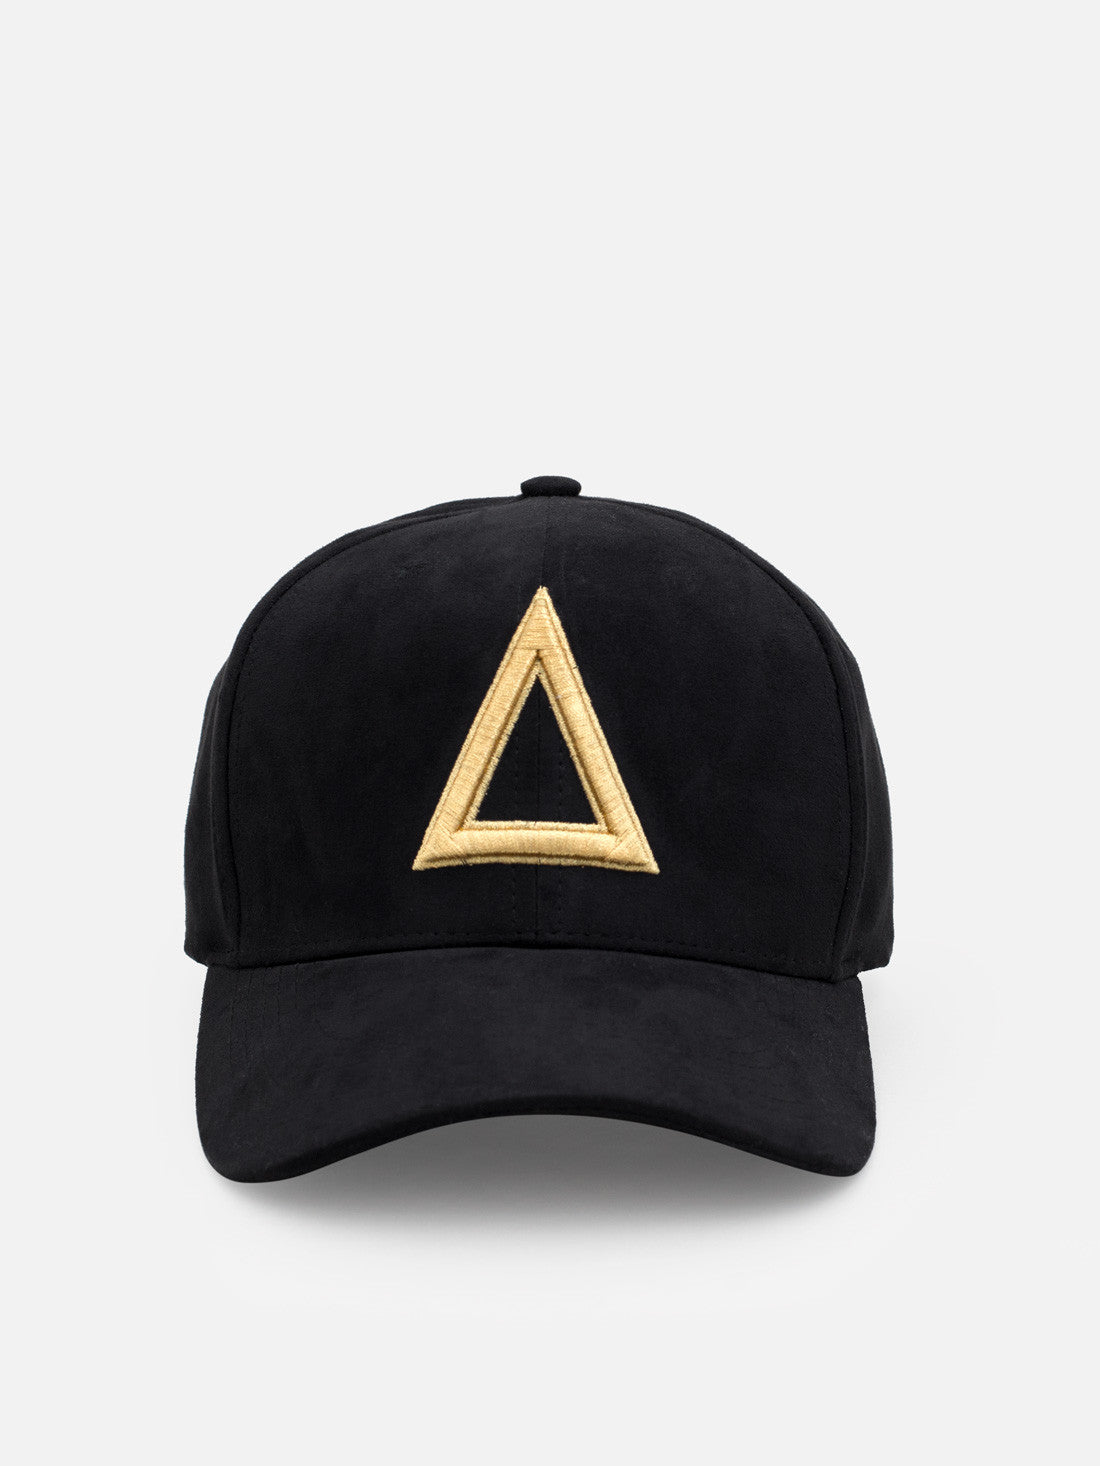 Suede Dad hat Black - Gold tri